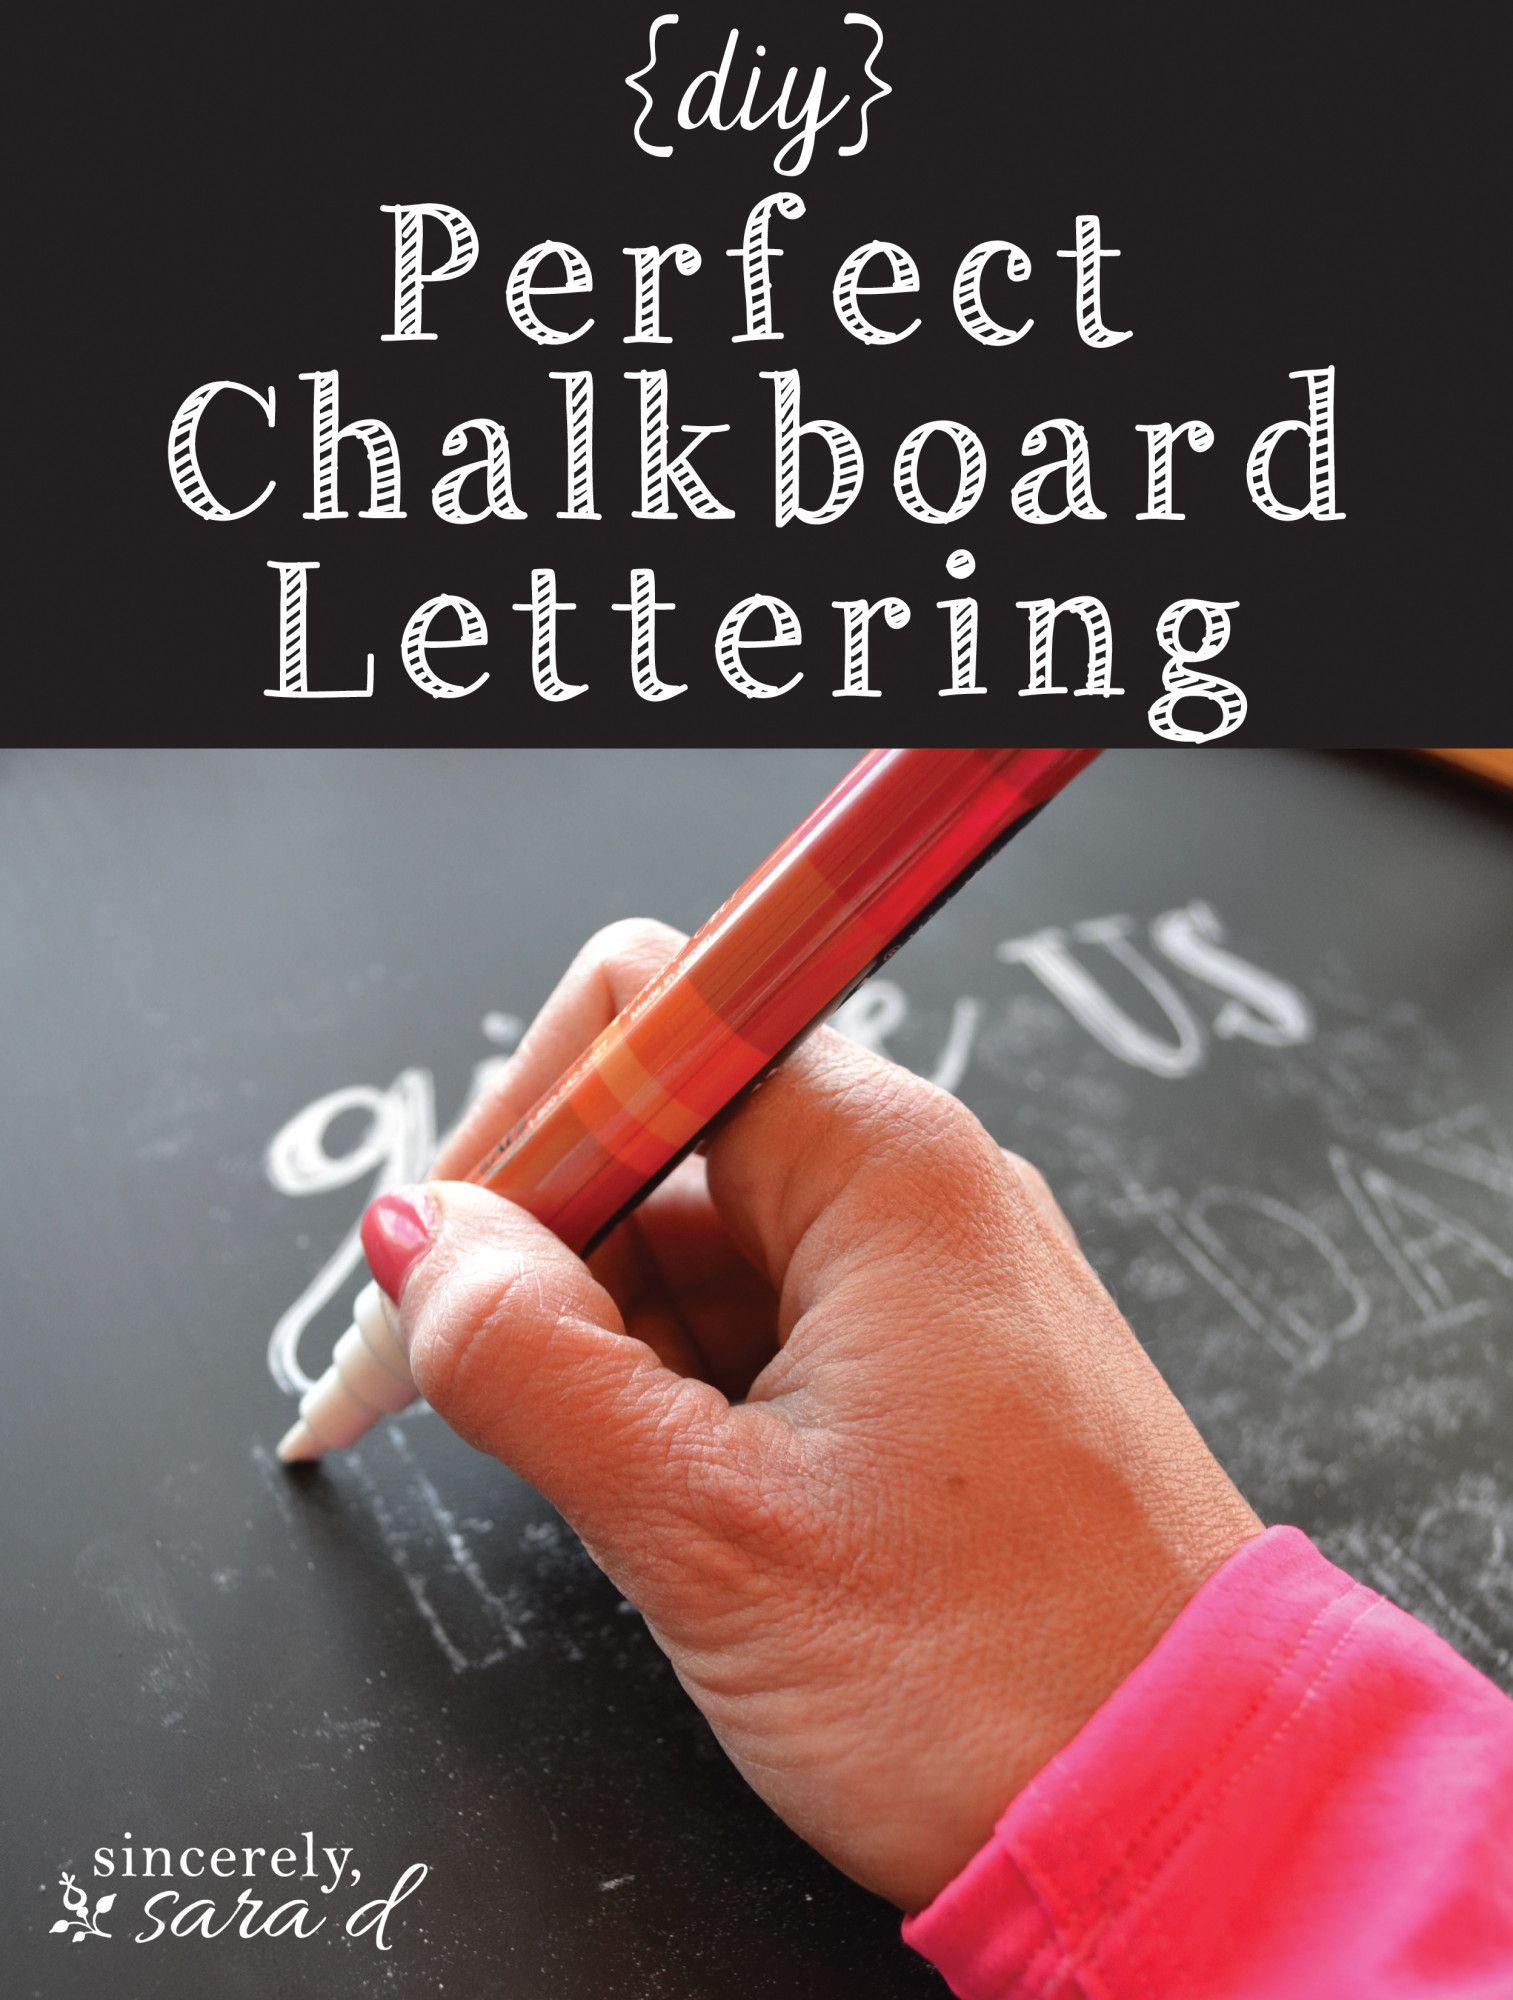 Chalkboard Art Easy Tutorial On How To Get Perfect Lettering Every Time